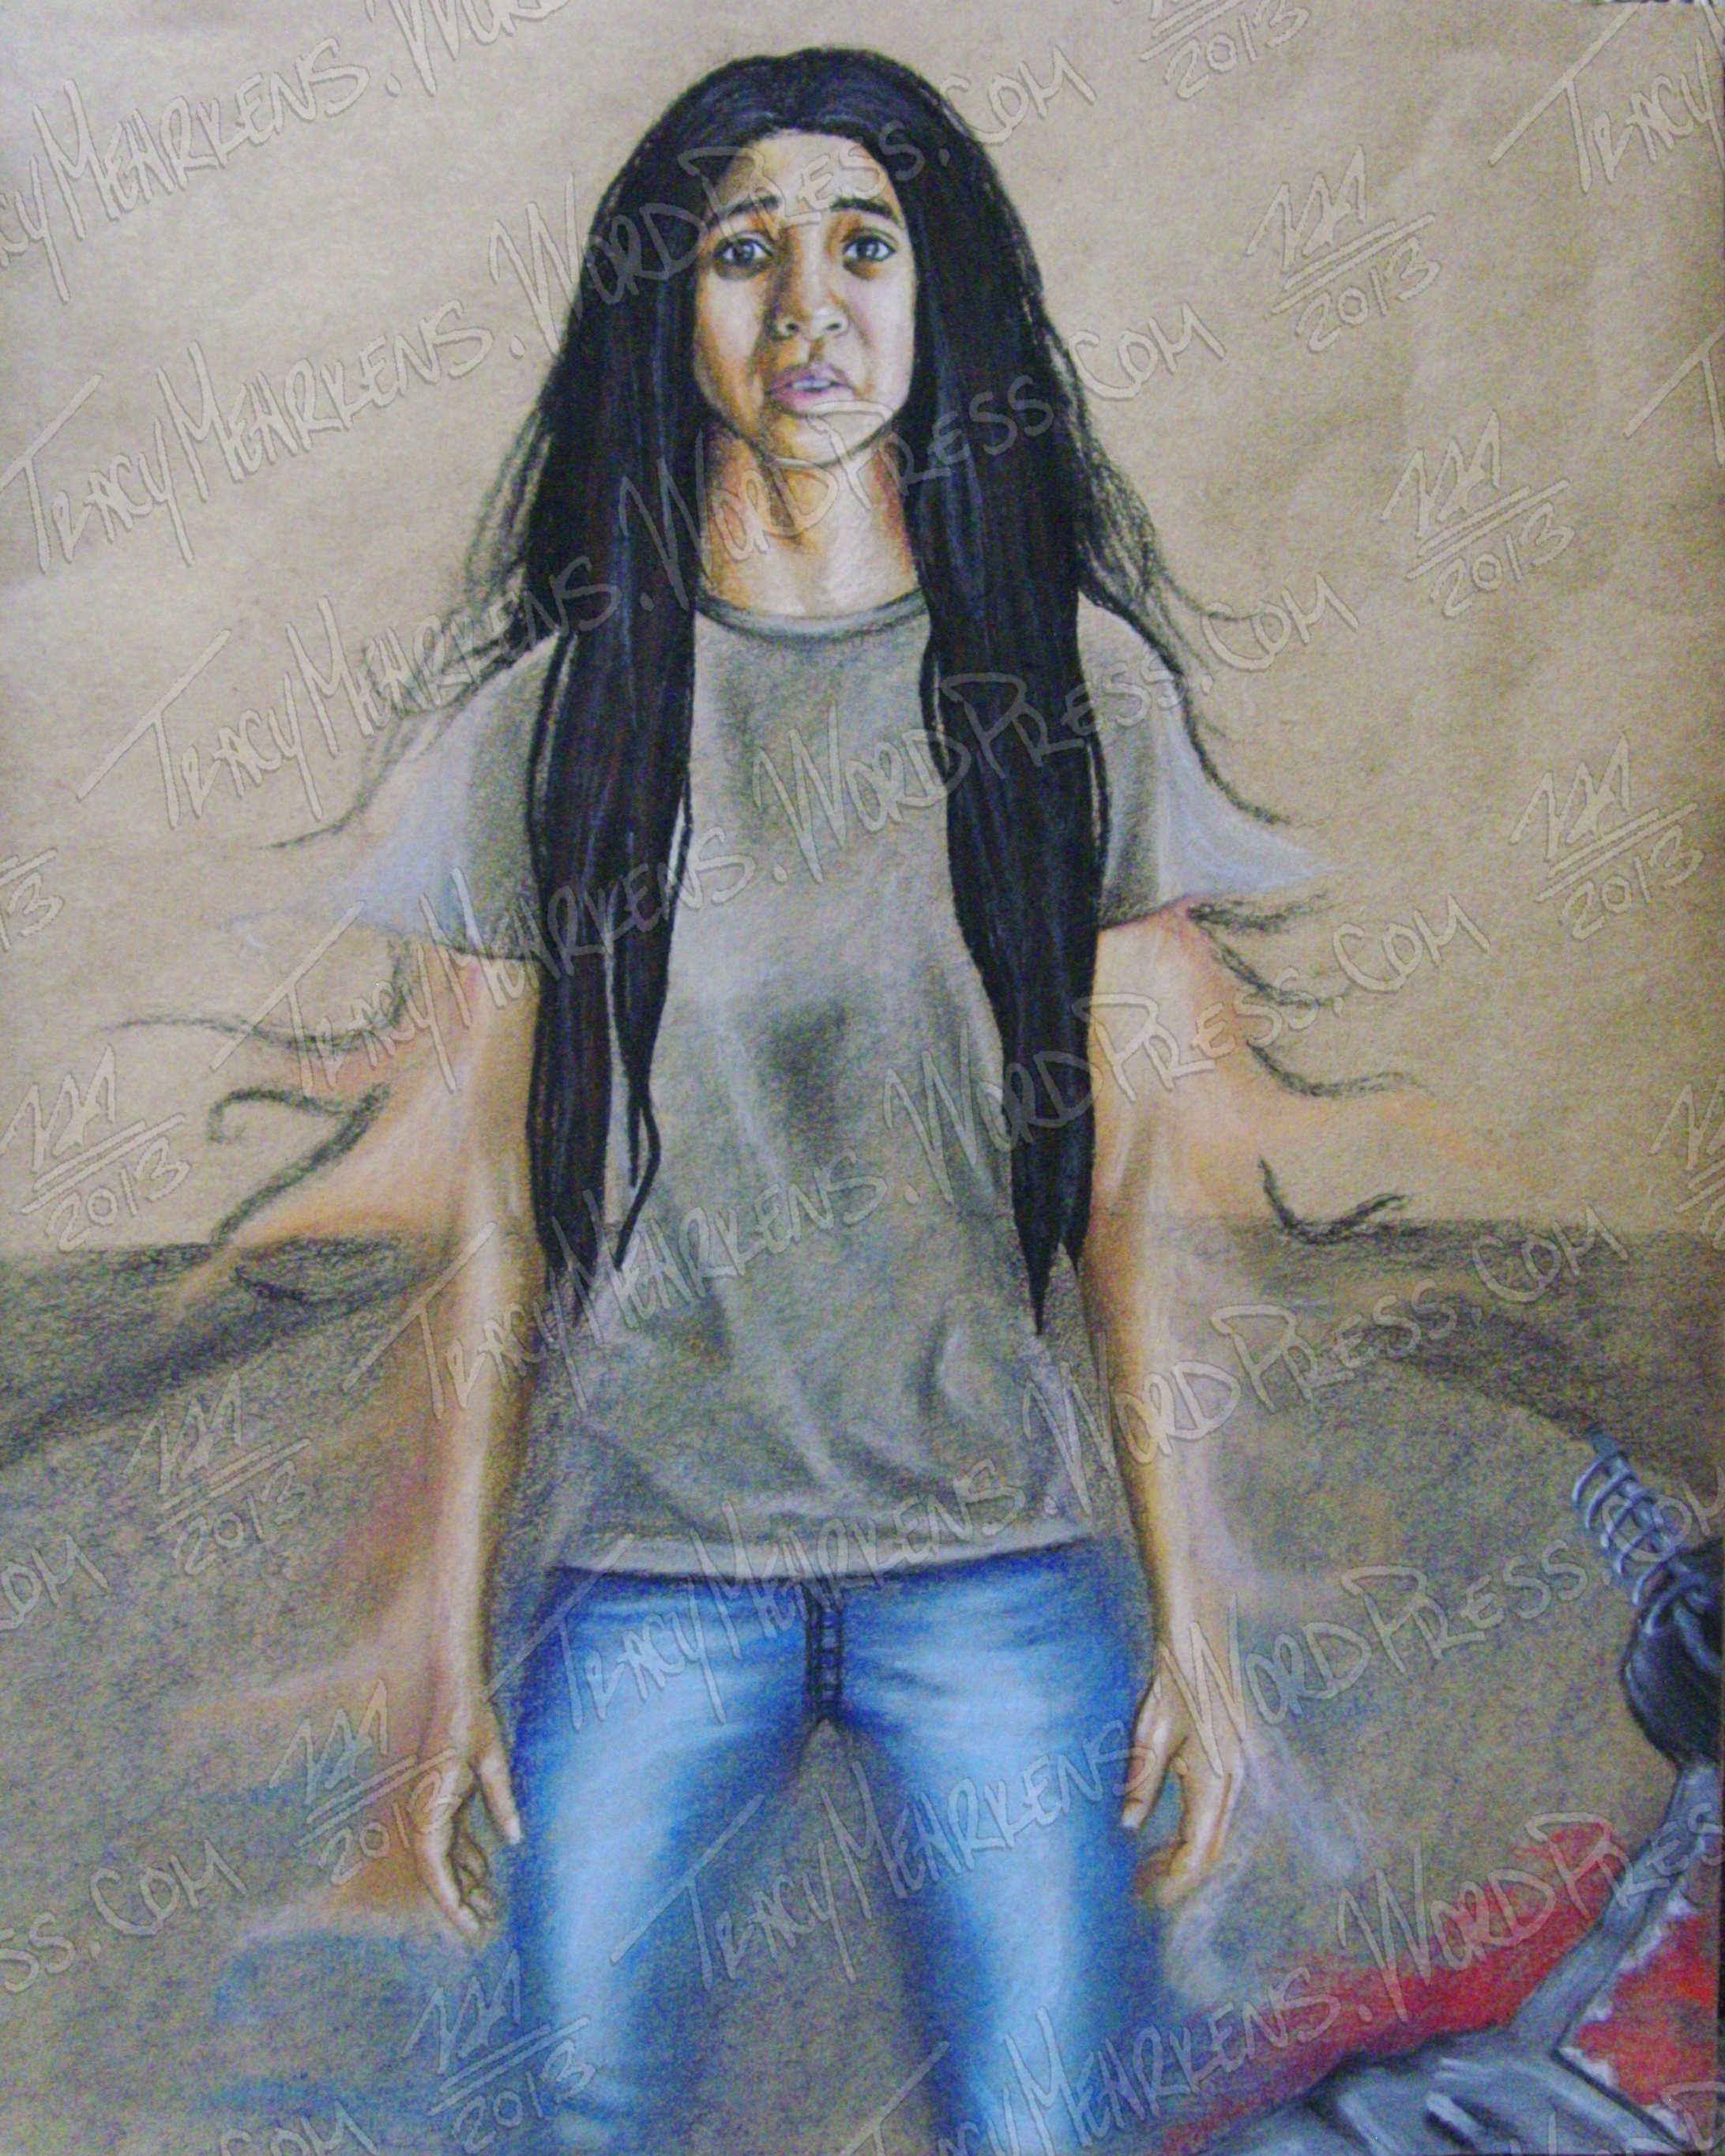 Copy of Life's Too Short. Pastel on Paper. 8x10 in. 2013.